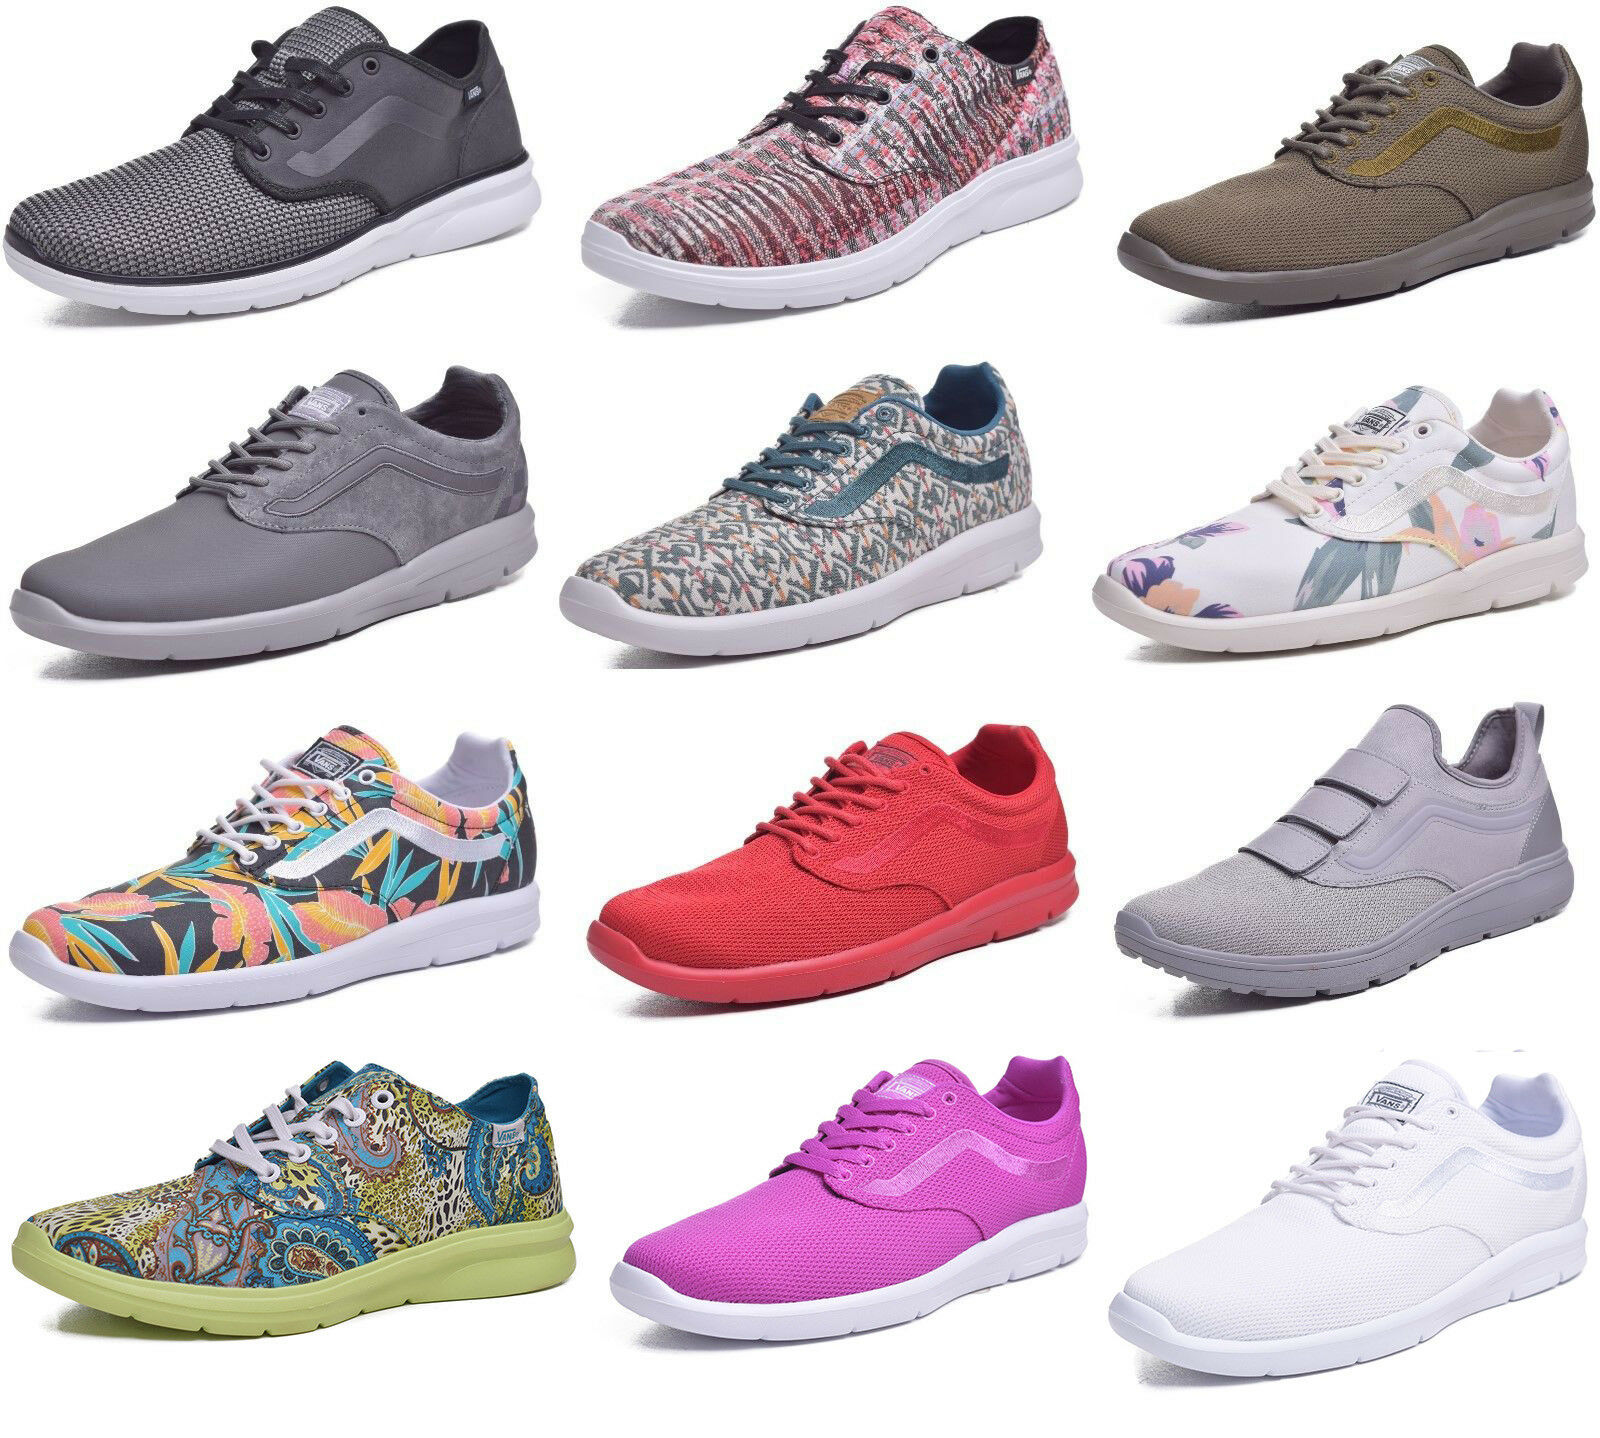 Vans Iso Ultracush Lightweight hommes /femmes Running Sk8 Chaussures Choose Color & Size